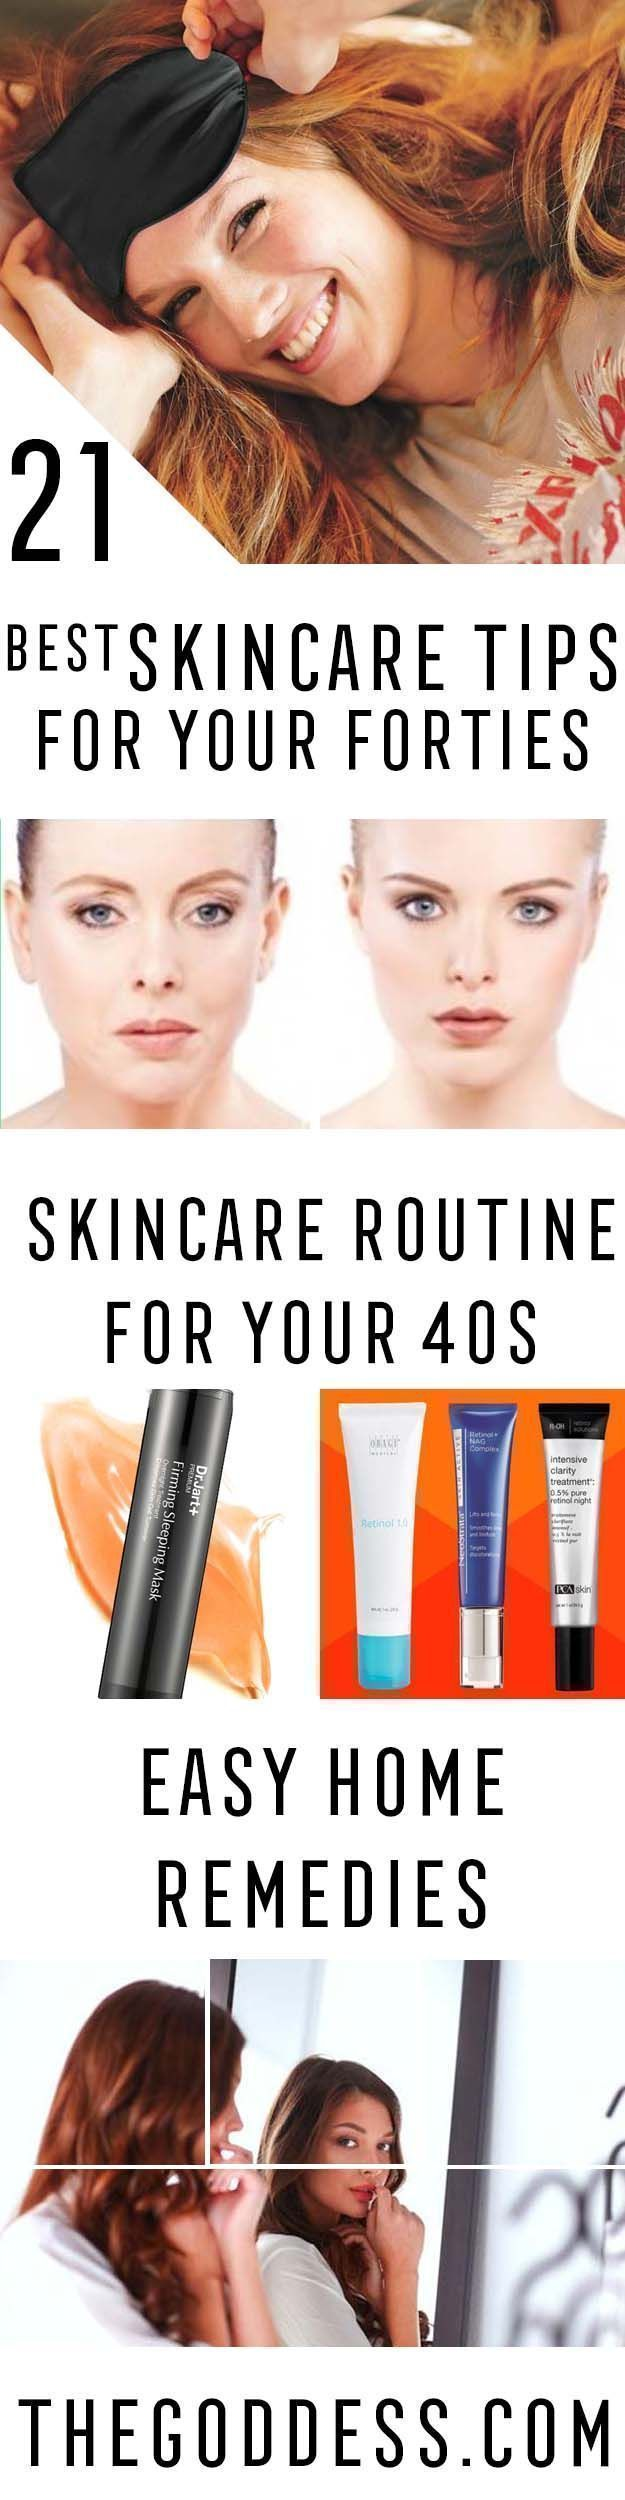 Best Skincare Tips for Your 40s -Check Out These Step By Step, Easy Anti Aging Routines and Skin Care Tips For Women. We Cover Essential Oils, Eye Creams, And Makeup Tips To Help You Stay Looking Younger To Keep That Beautiful Face And Beauty. Anti-Aging Products And Routines That You Can Do At Home To Prevent Wrinkles, Hide Puffy Eyes And Dark Circles, And Cover Acne Scars. Also Included Are Skin Masks, Vitamins, And Skincare Products To Restore Your Natural Beauty And Skin. Look Younger As…